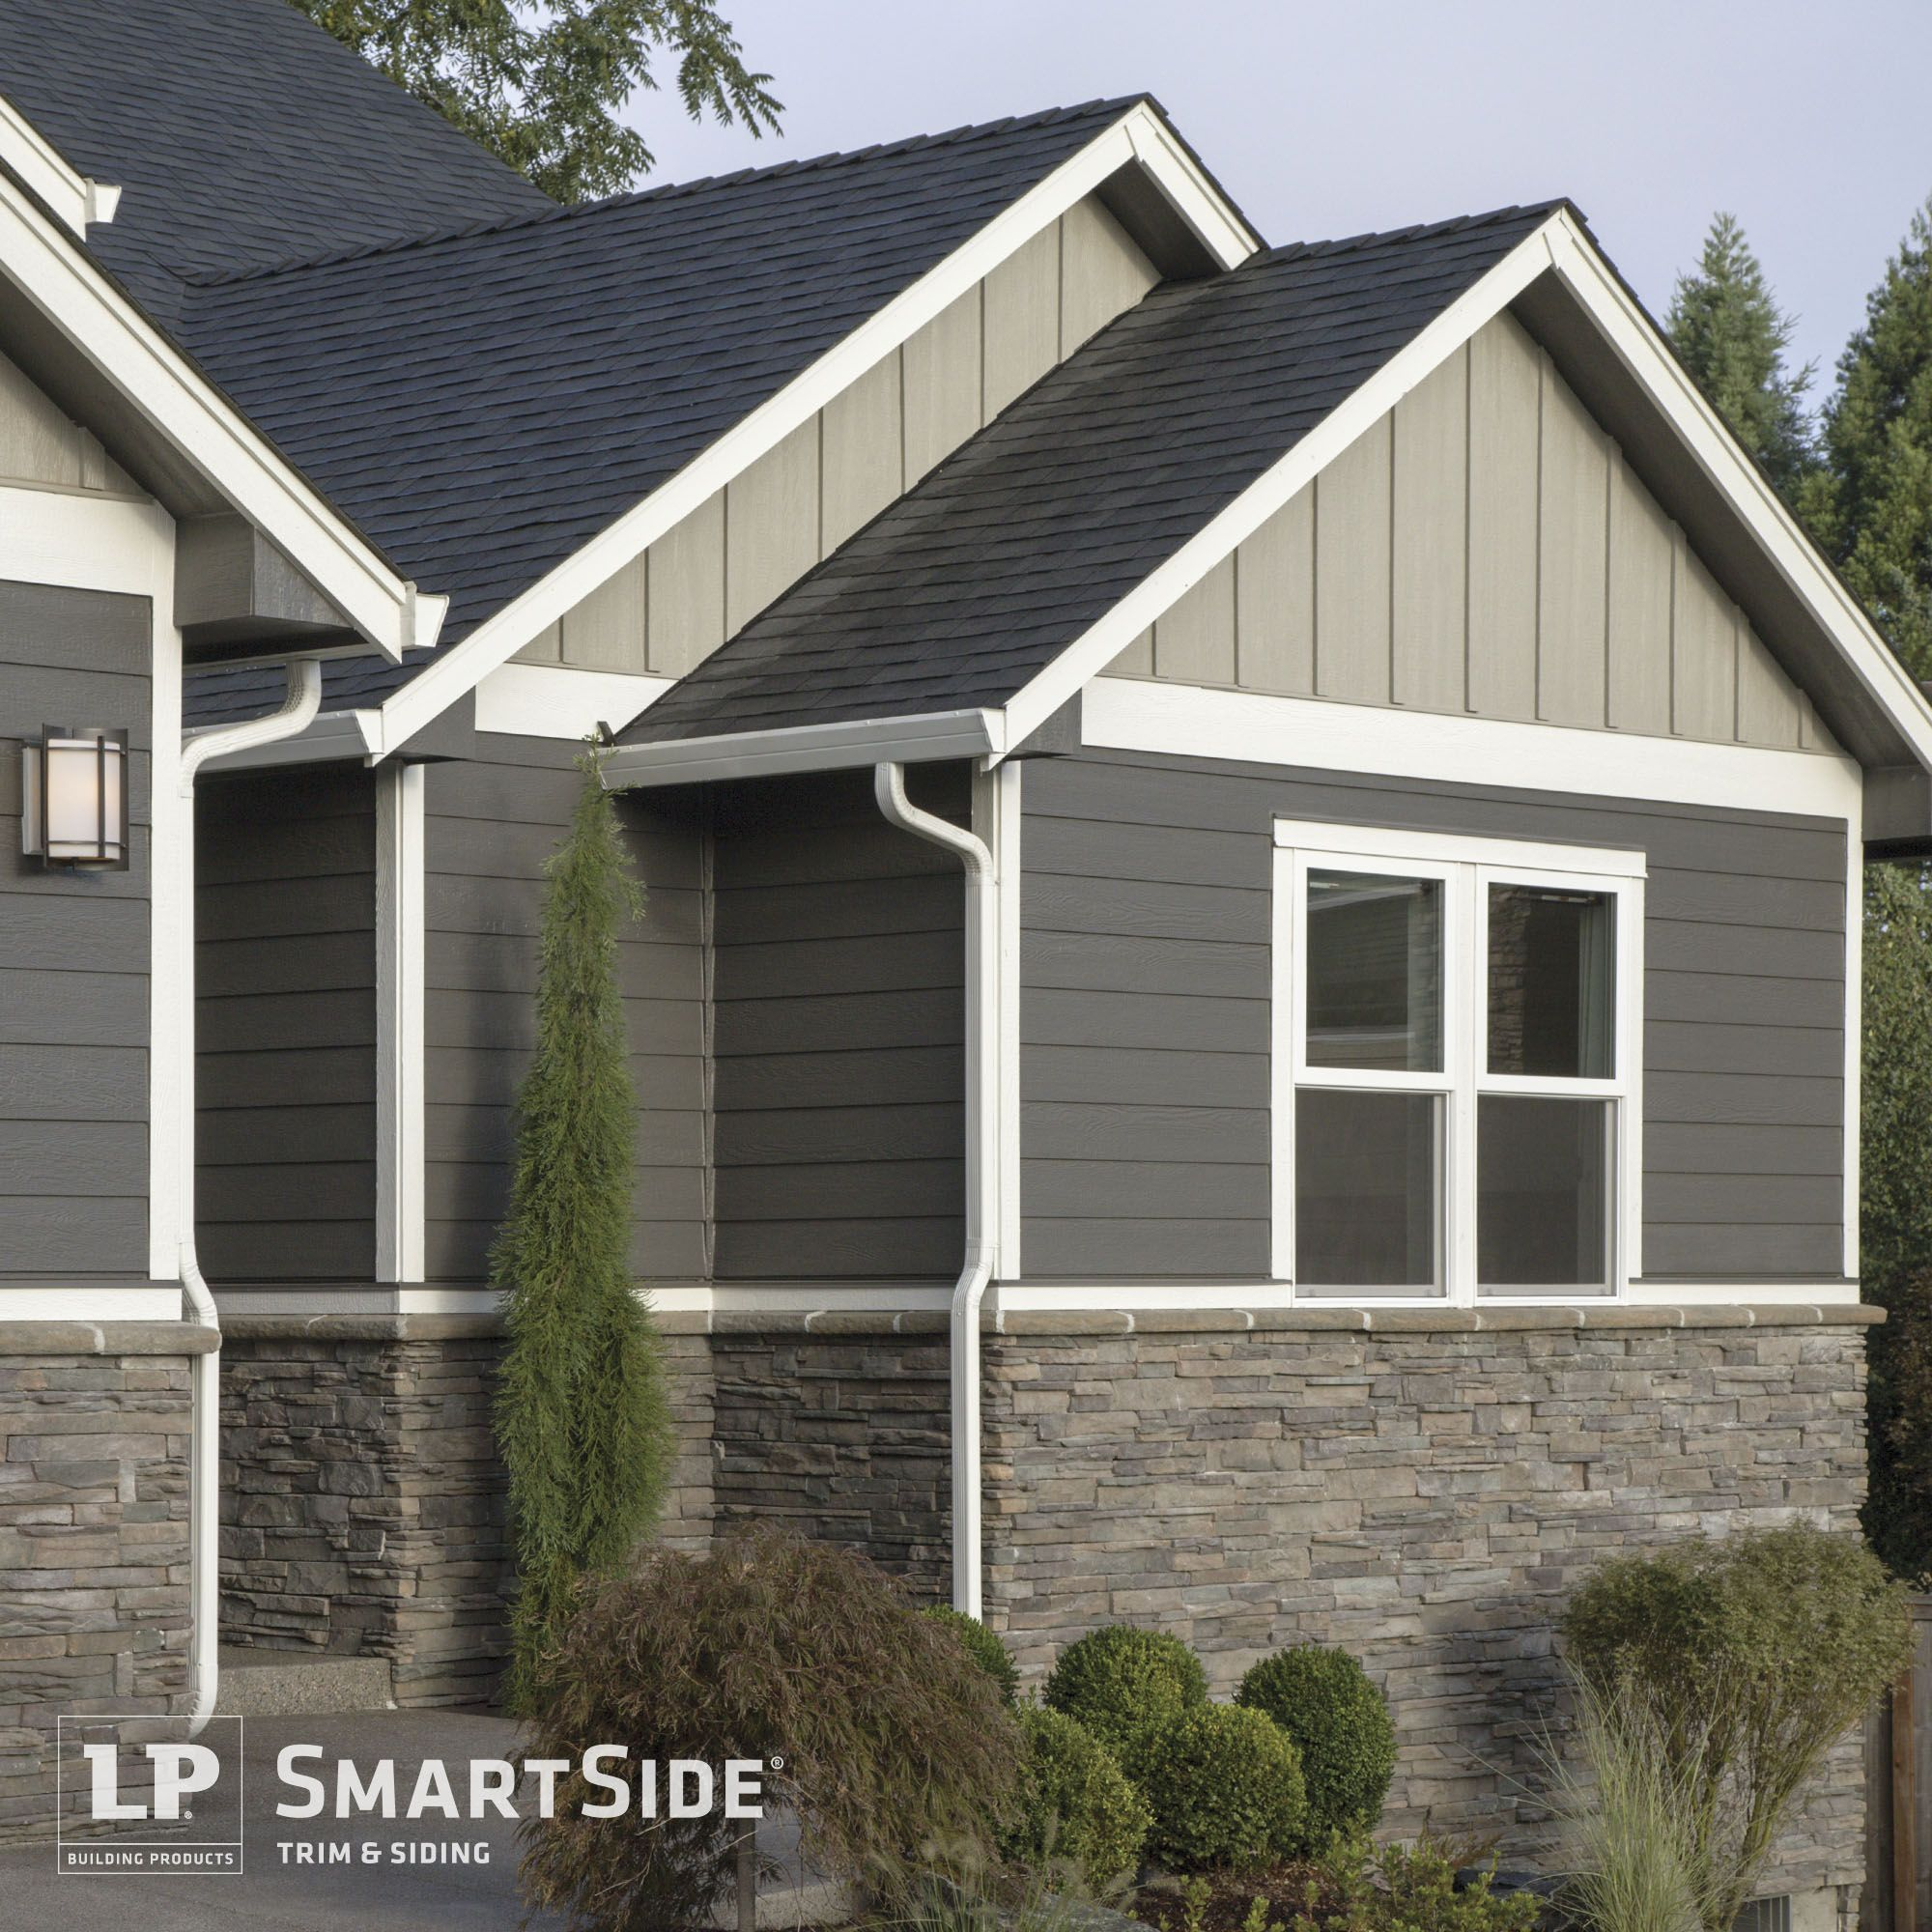 Lp Smartside Trim Lap And Panel Siding Pair With Horizontal Stonework To Create Dimension And Excitement On Cottage Exterior House Paint Exterior House Siding